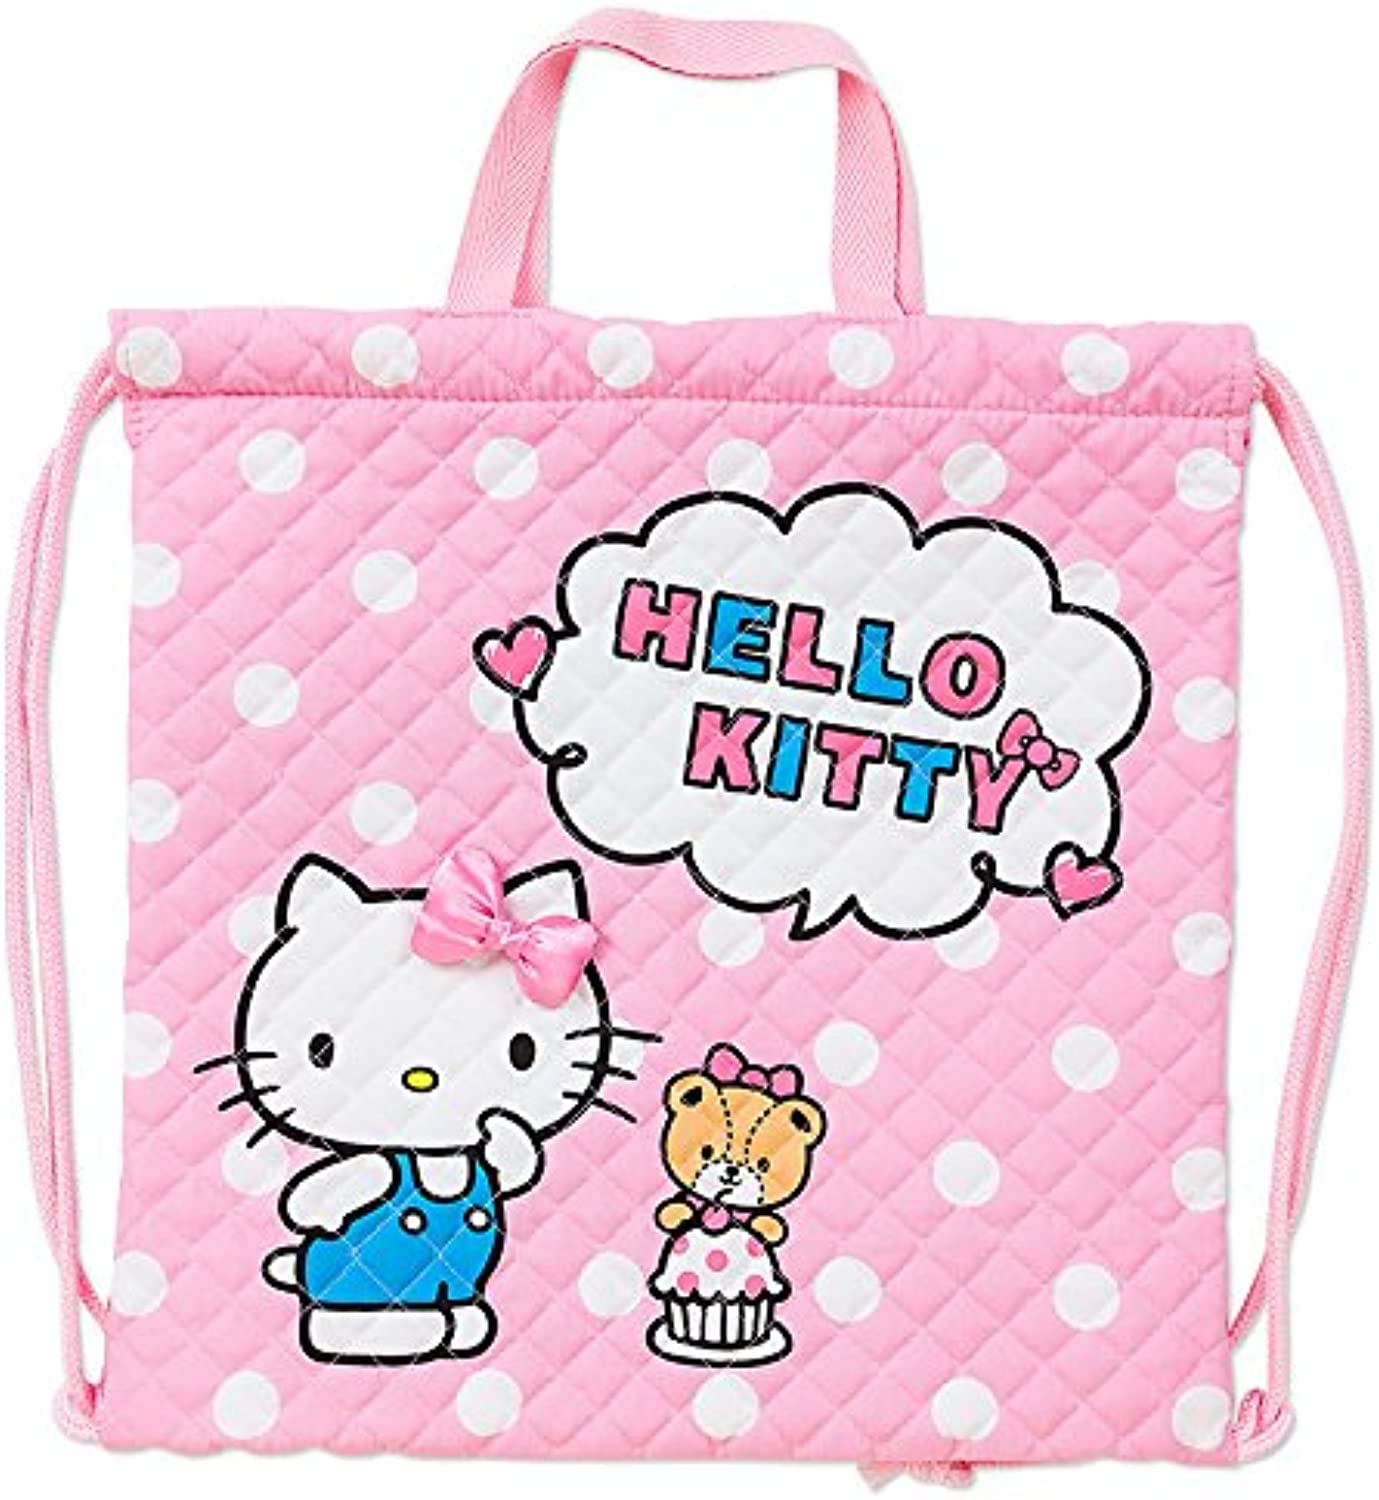 Hello Kitty Hand Dot Purse String Quilting Dpfcb6bb14270